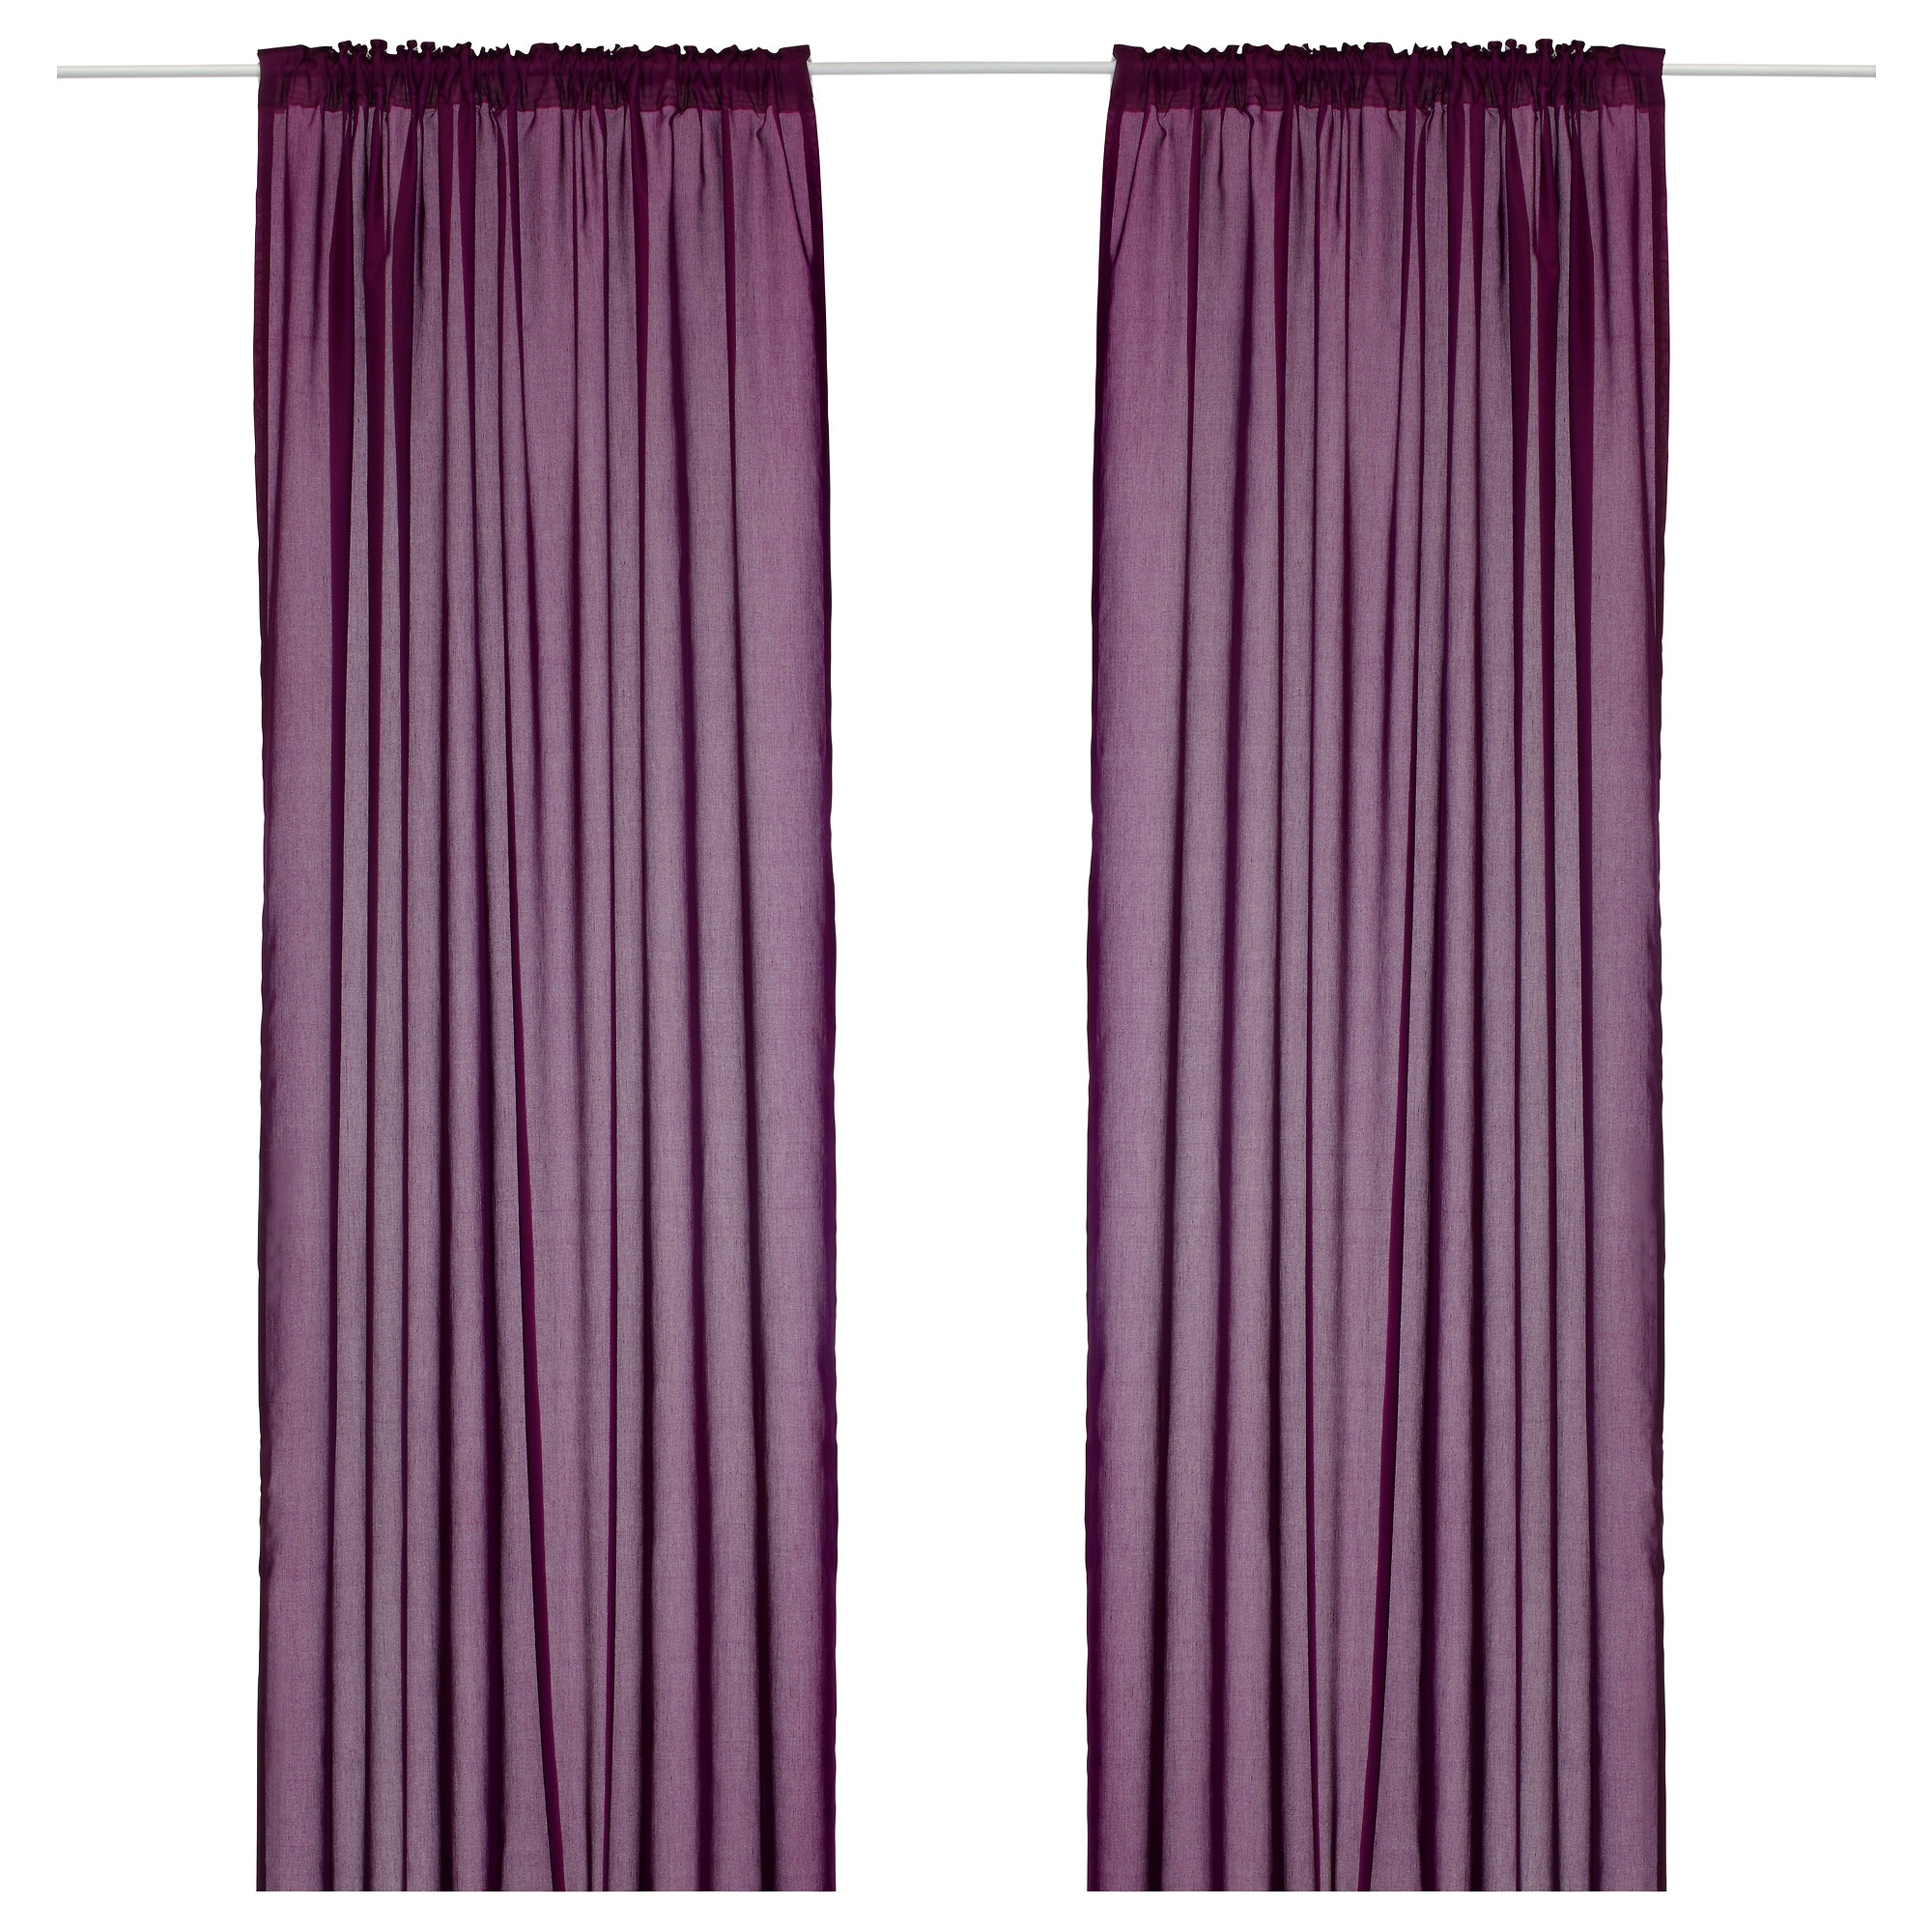 Curtains - Living Room & Bedroom Curtains - IKEA - Purple Curtains Ikea